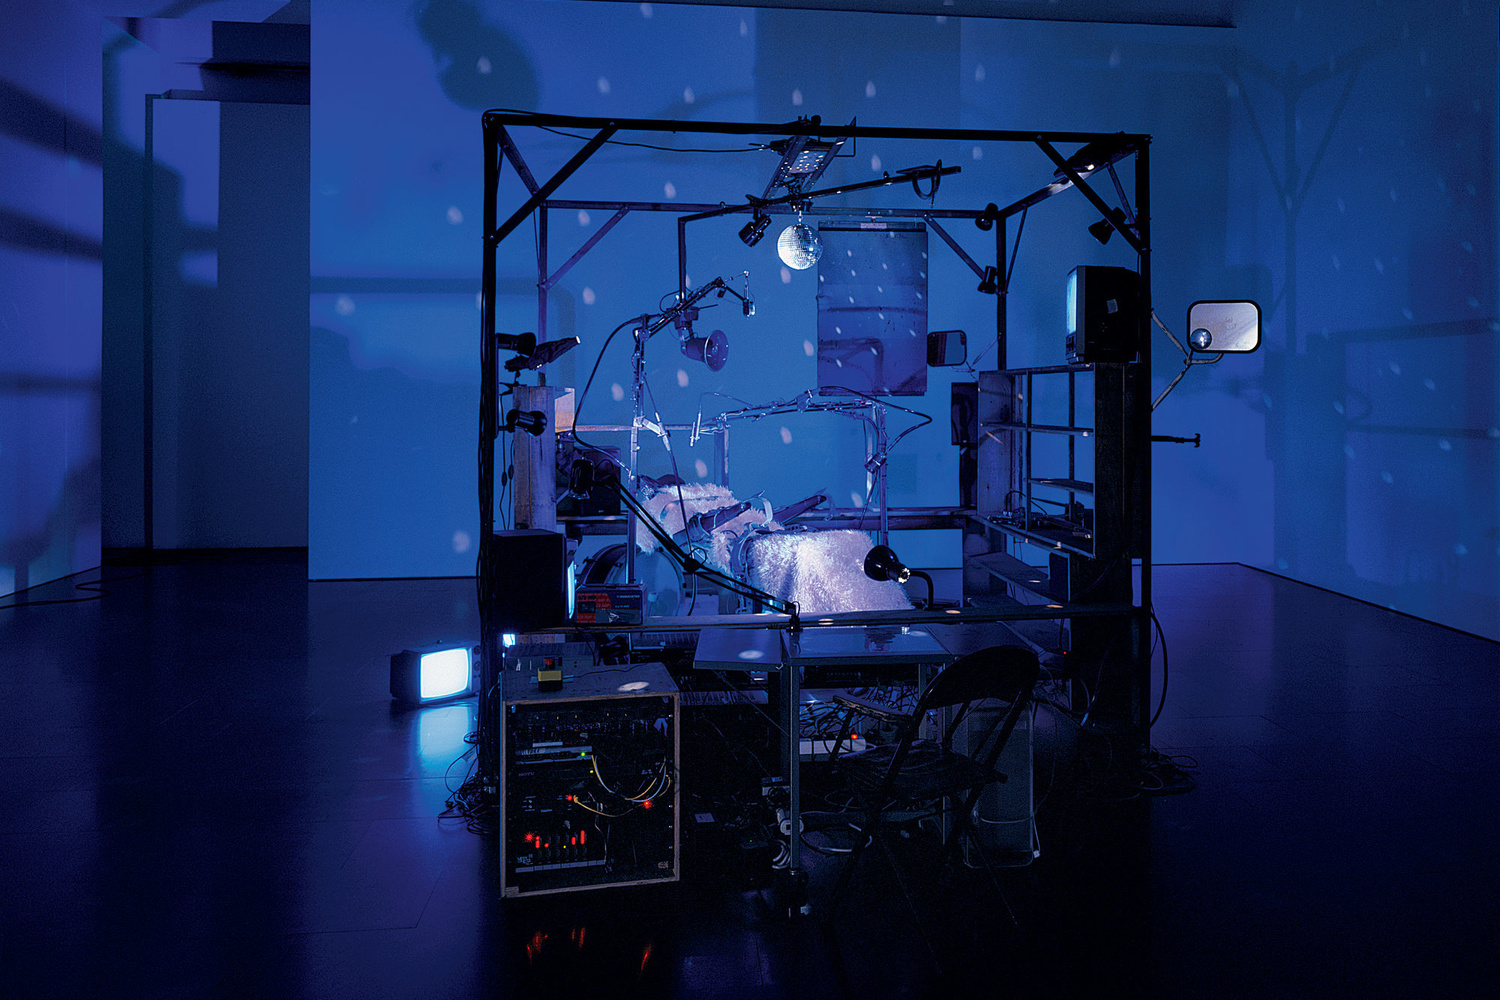 Janet Cardiff and George Bures Miller. The Killing Machine. 2007. Pneumatics, robotics, electromagnetic beaters, dentist chair, electric guitar, CRT monitors, computer, various control systems, lights, and sound (approx. 5 min.). 9′ 10″ x 13′ 1″ x 8′ 2″ (118 x 157 x 98 cm). The Museum of Modern Art, New York. Gift of the Julia Stoschek Foundation, Düsseldorf, and the Dunn Bequest. © 2019 Janet Cardiff and George Bures Miller. Photo: Seber Ugarte & Lorena López. Courtesy the artists and Luhring Augustine, New York.